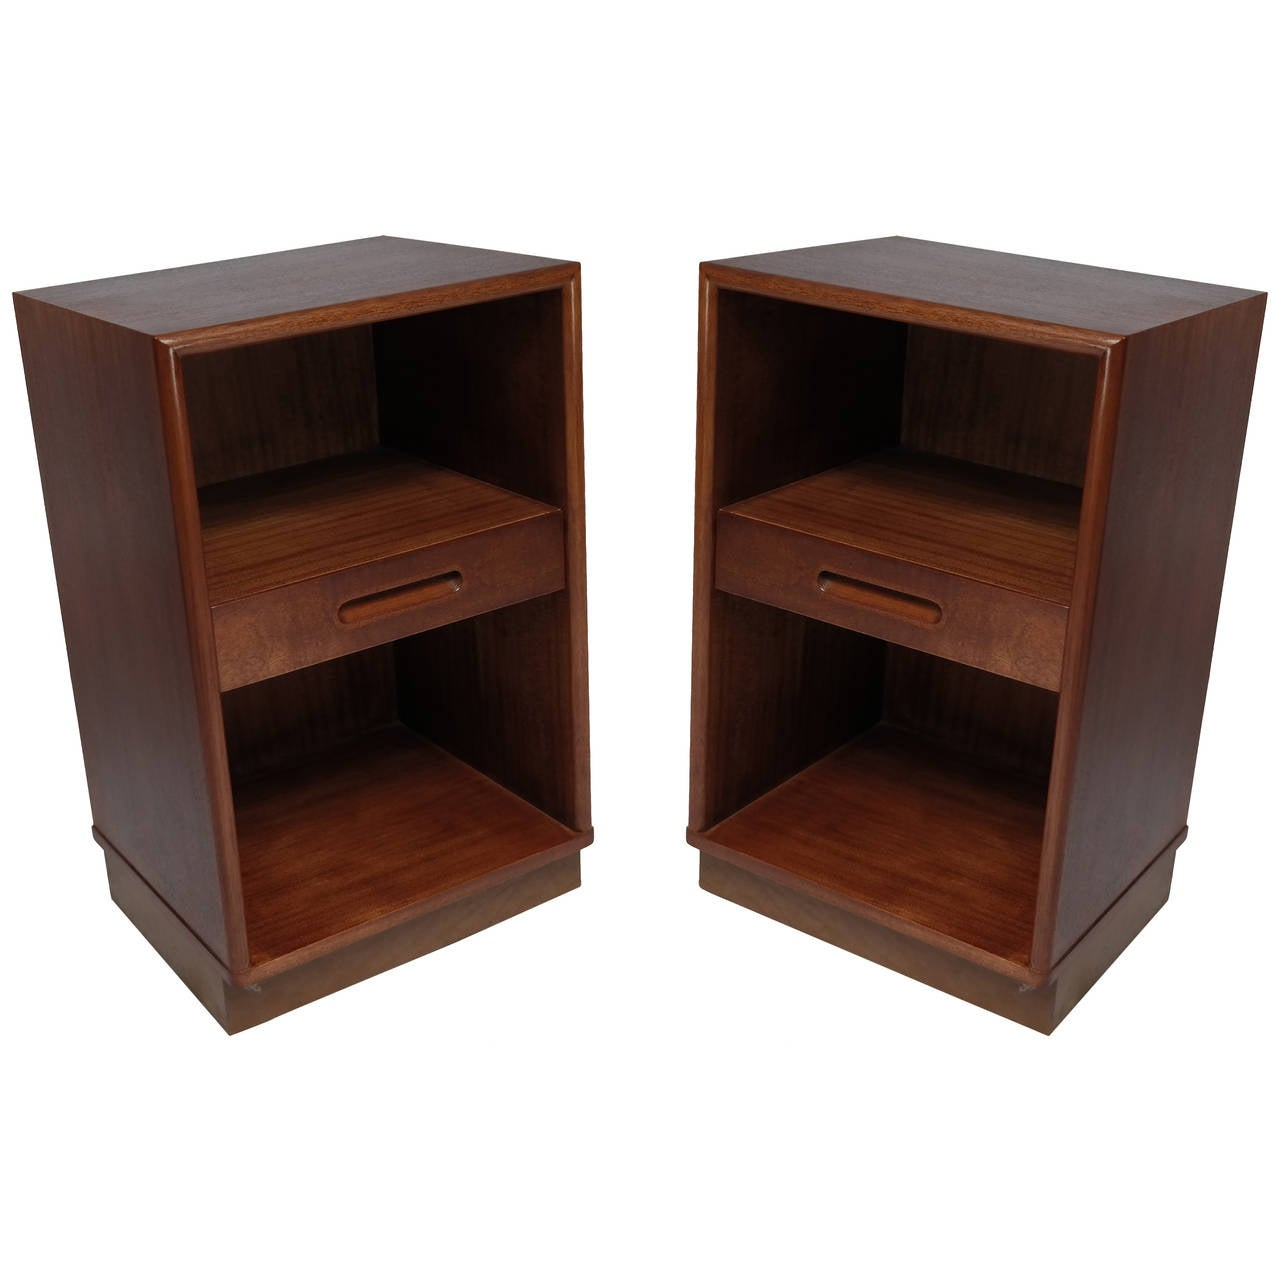 Bedside Cabinets by Edward Wormley for Dunbar